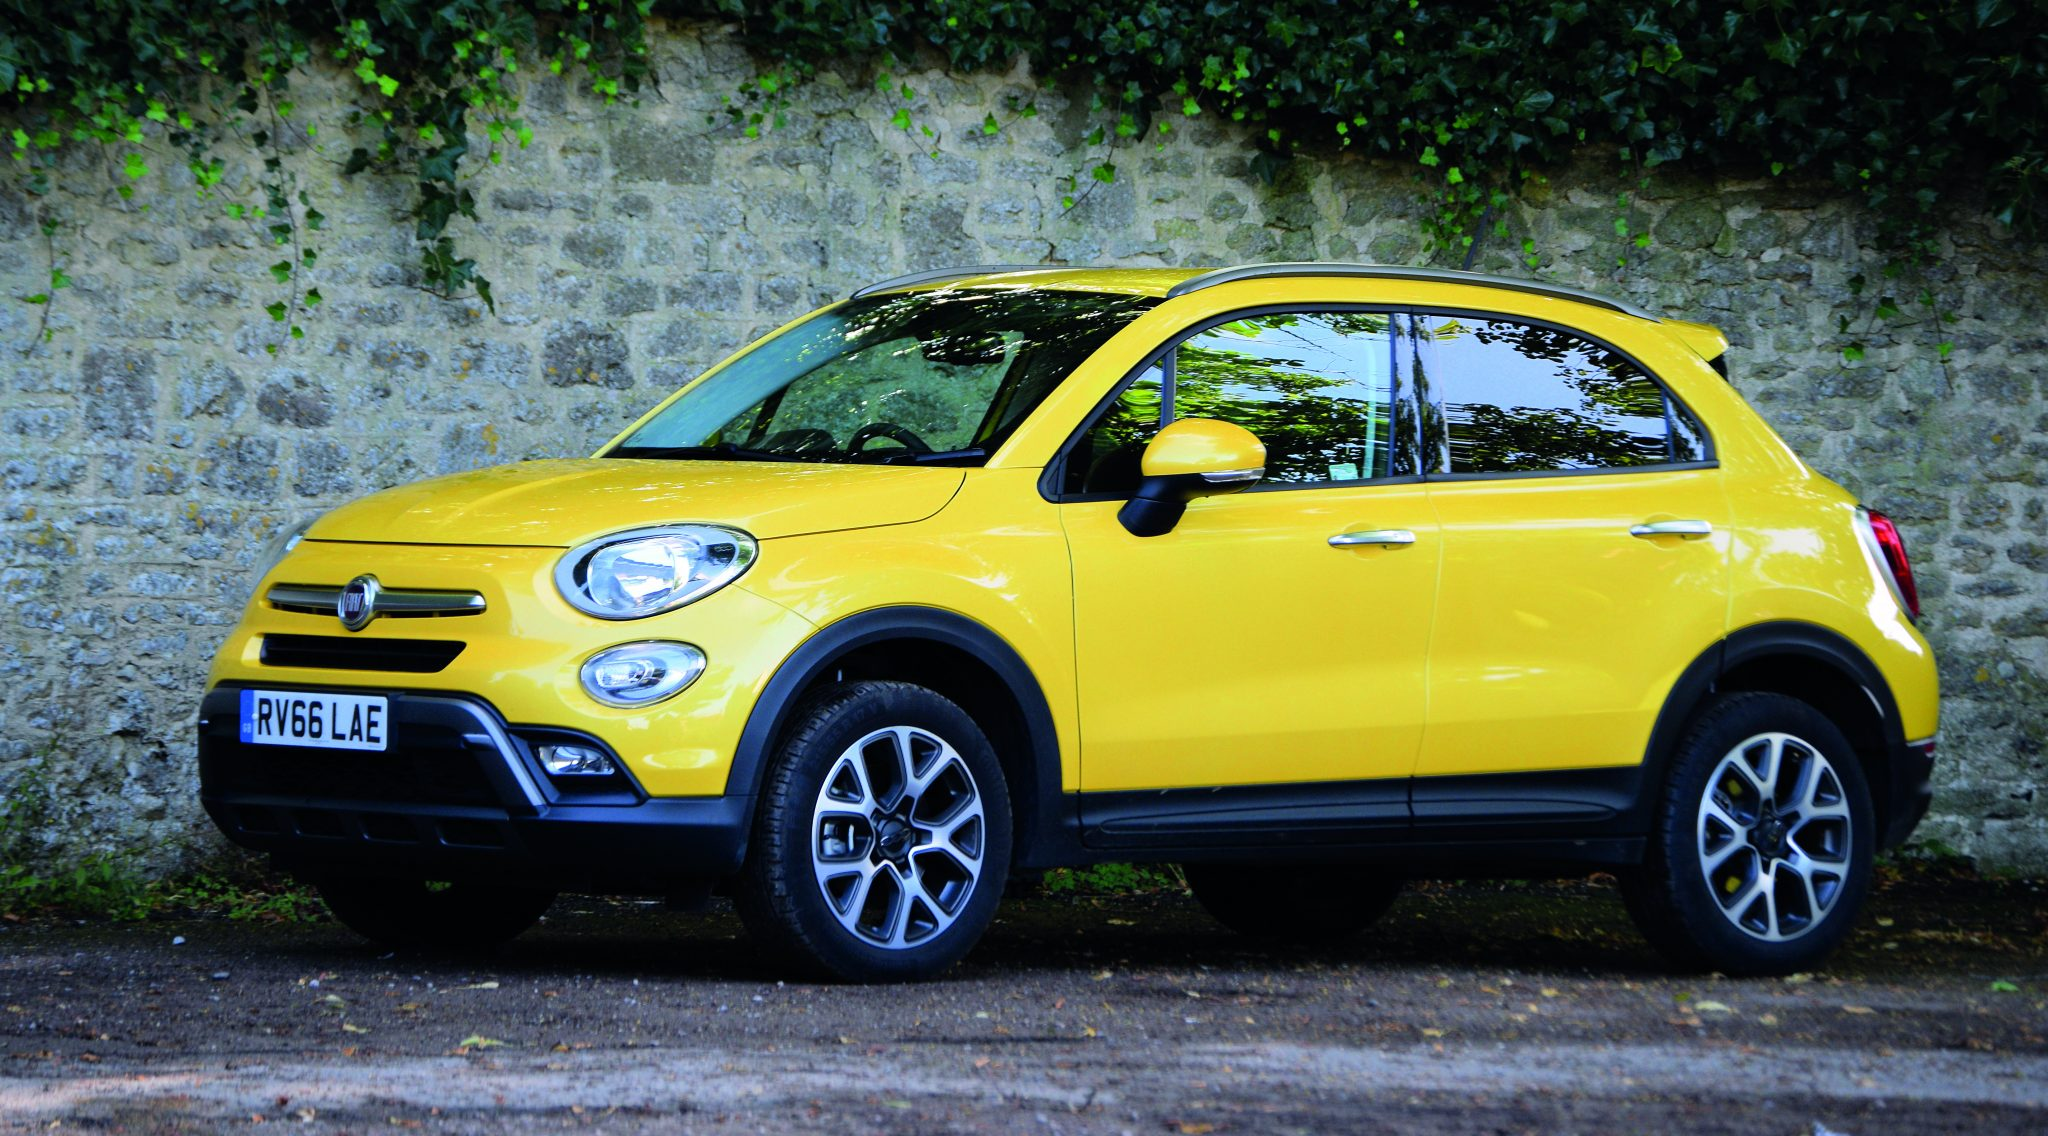 Fiat 500X The small crossover with Italian flair